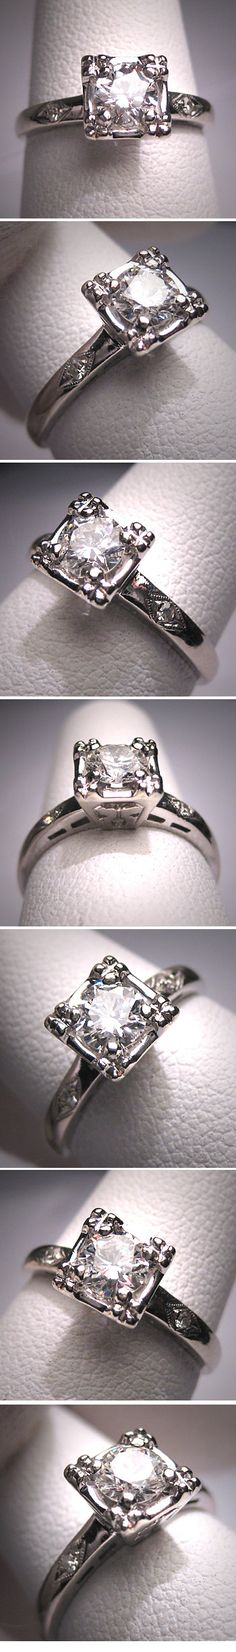 My Antique Wedding Rings Guide To Help You Find The Perfect Ring And Save Yourself A Fortune More Details Here Cheap Solutions